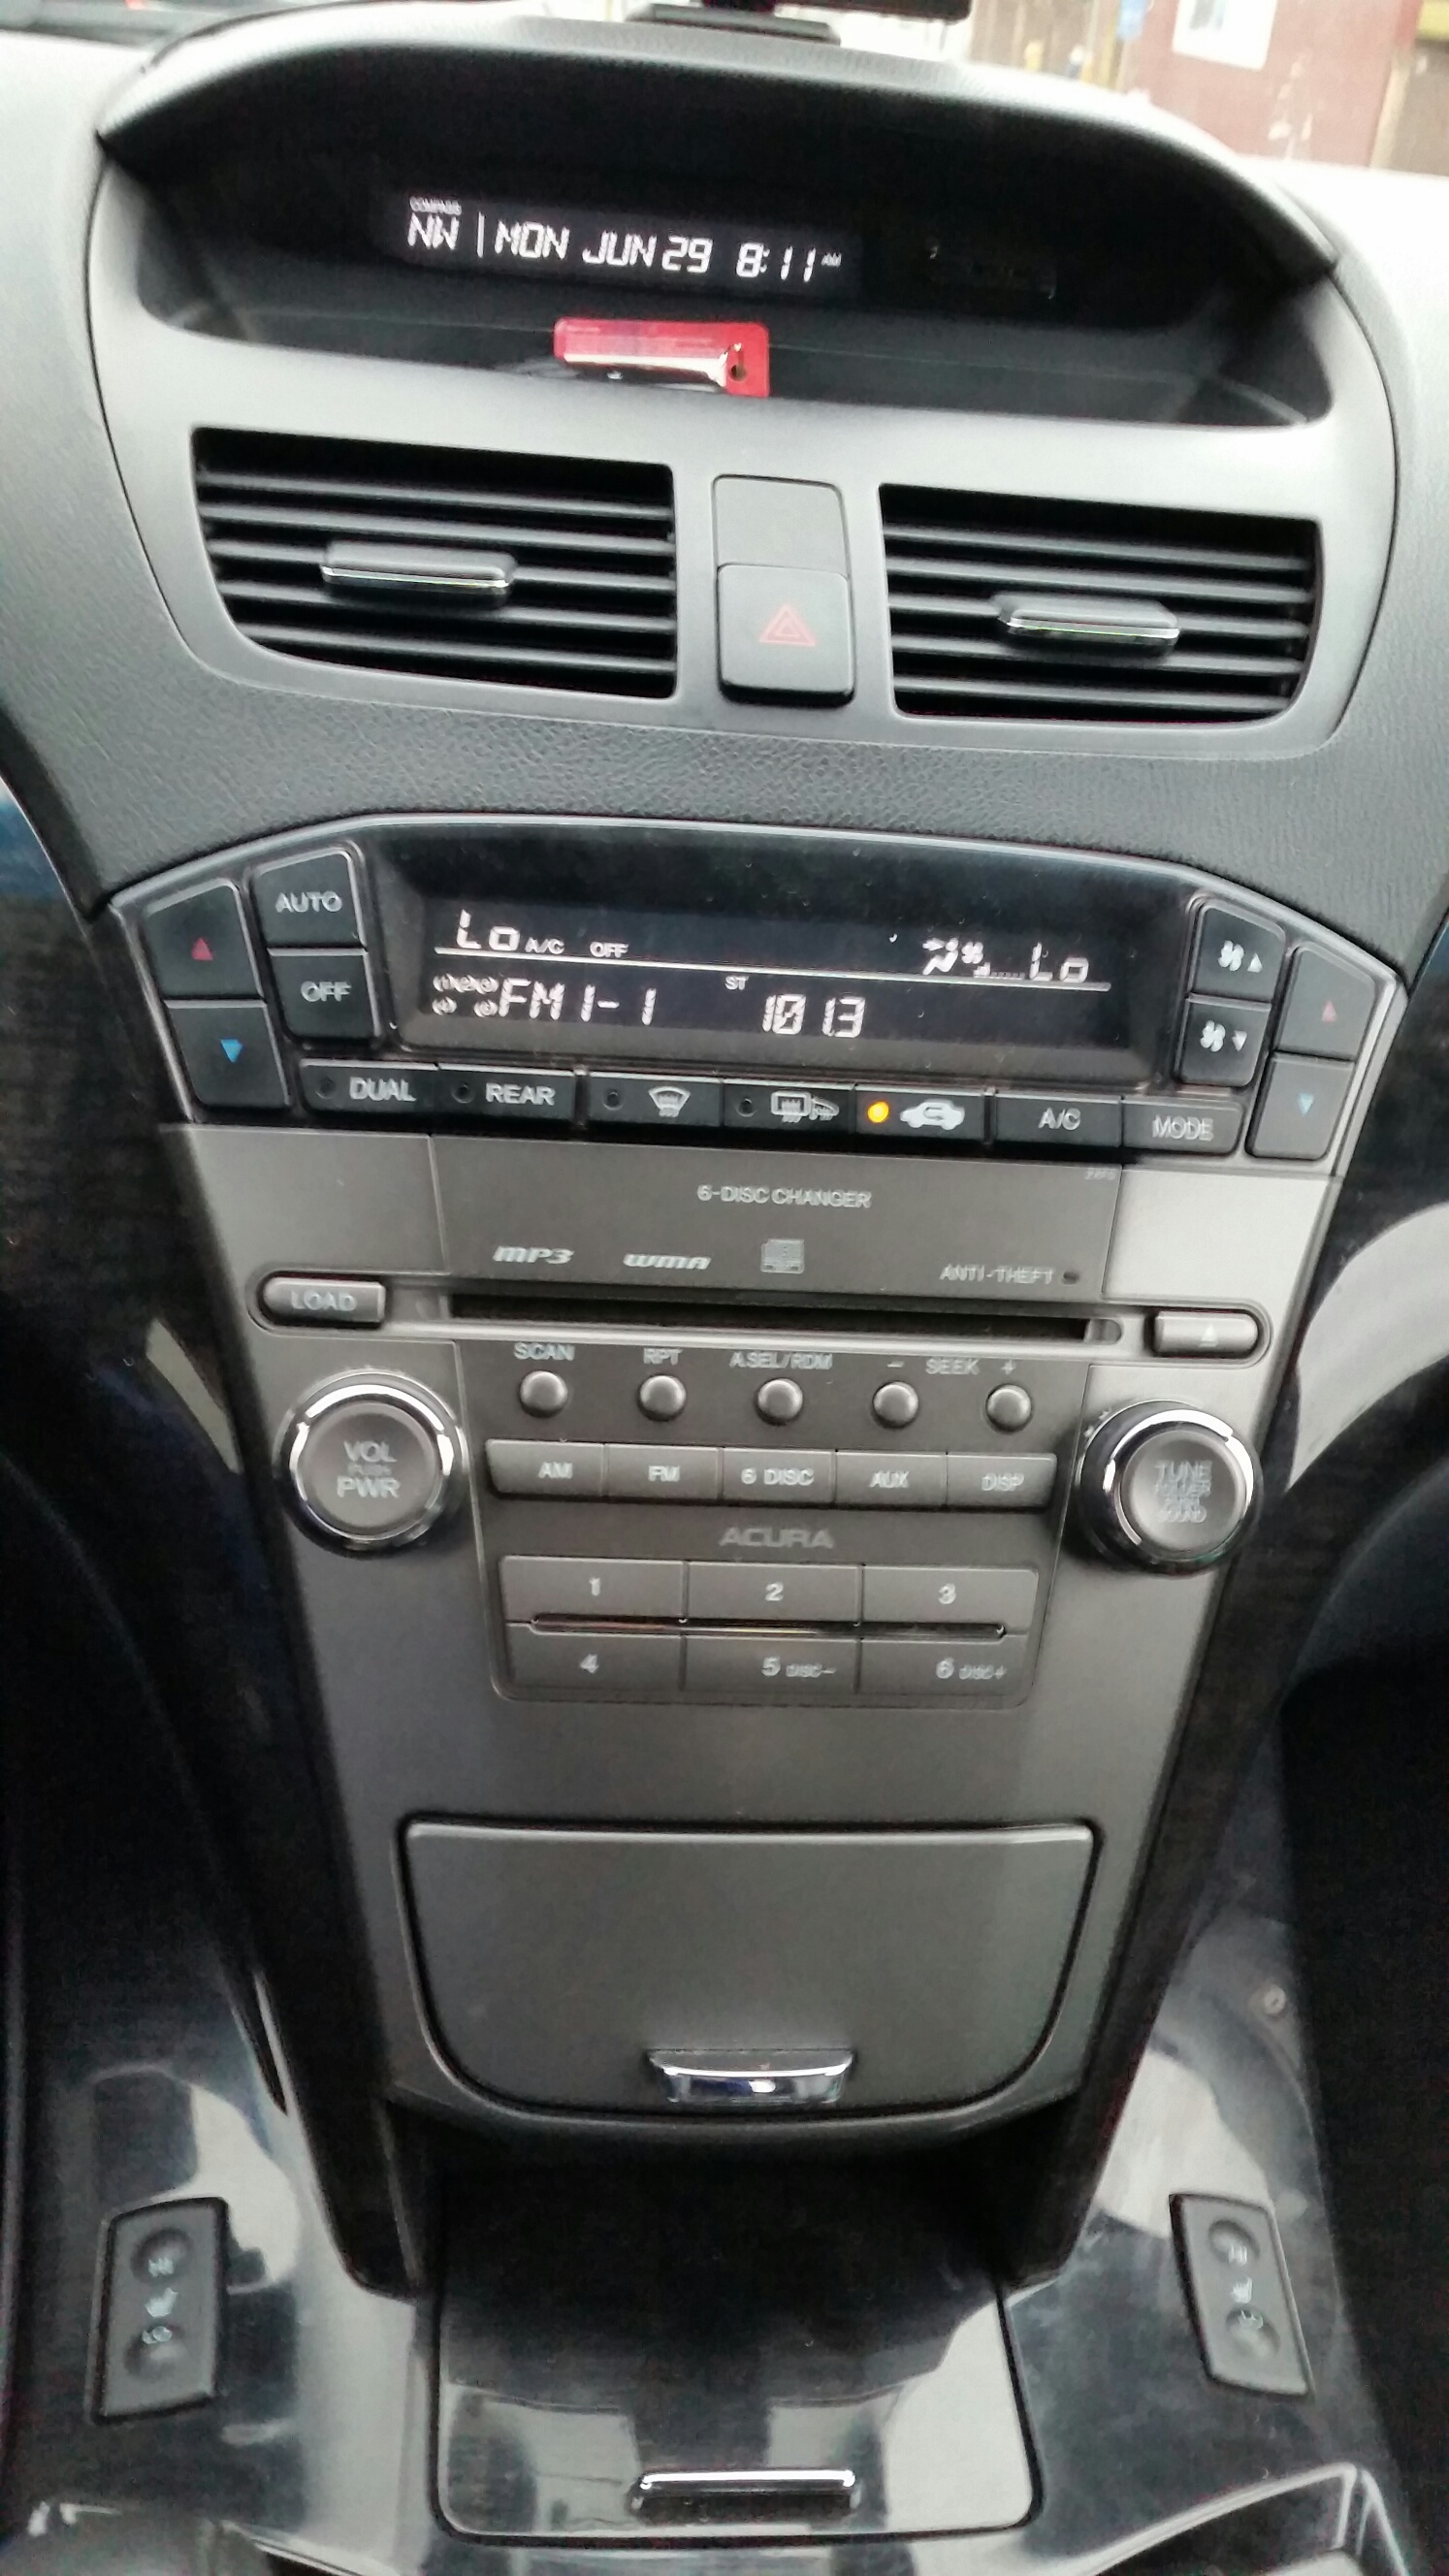 Where To Find A Dash Kit For An Aftermarket Stereo On A 08 Acura Mdx Suv Forums